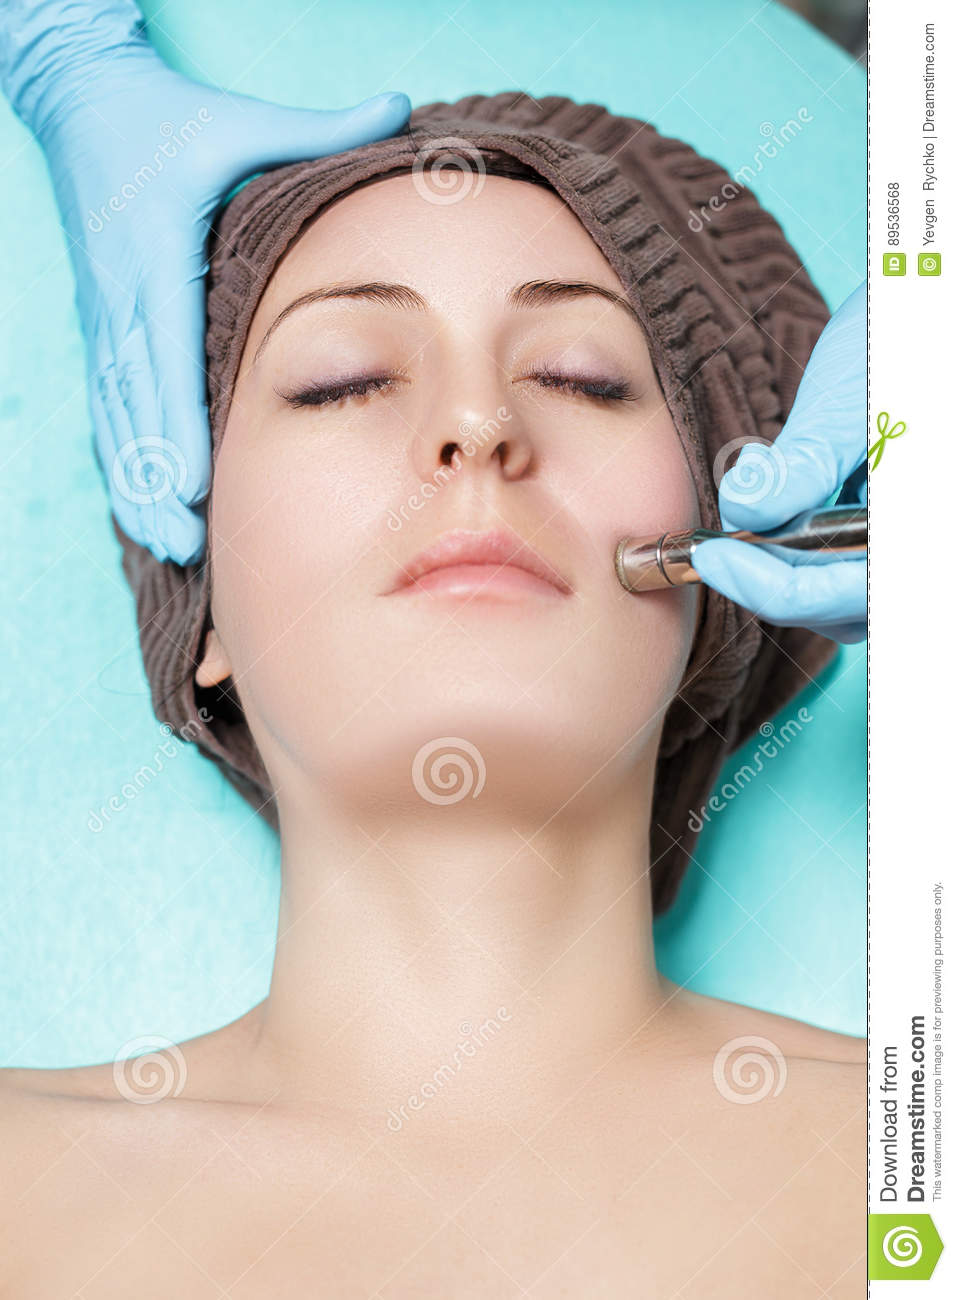 Mechanical cleansing of the face: what it is, description of the procedure, contraindications 96